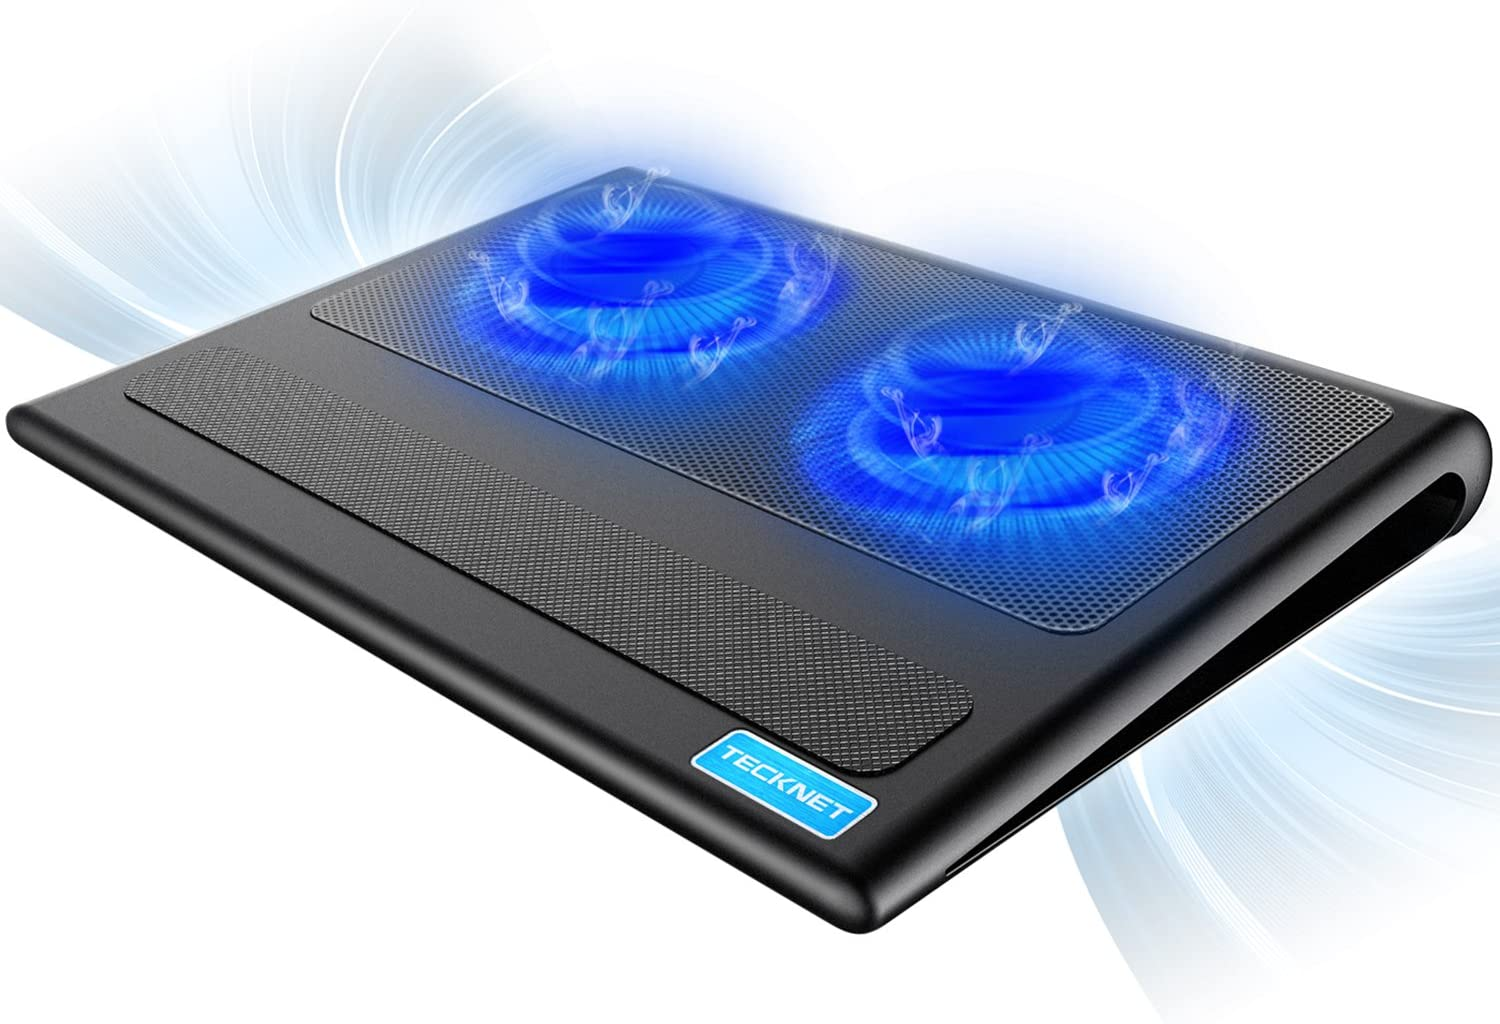 Cooling Pad - N5 by TECKNET - Laptop Cooling Pads